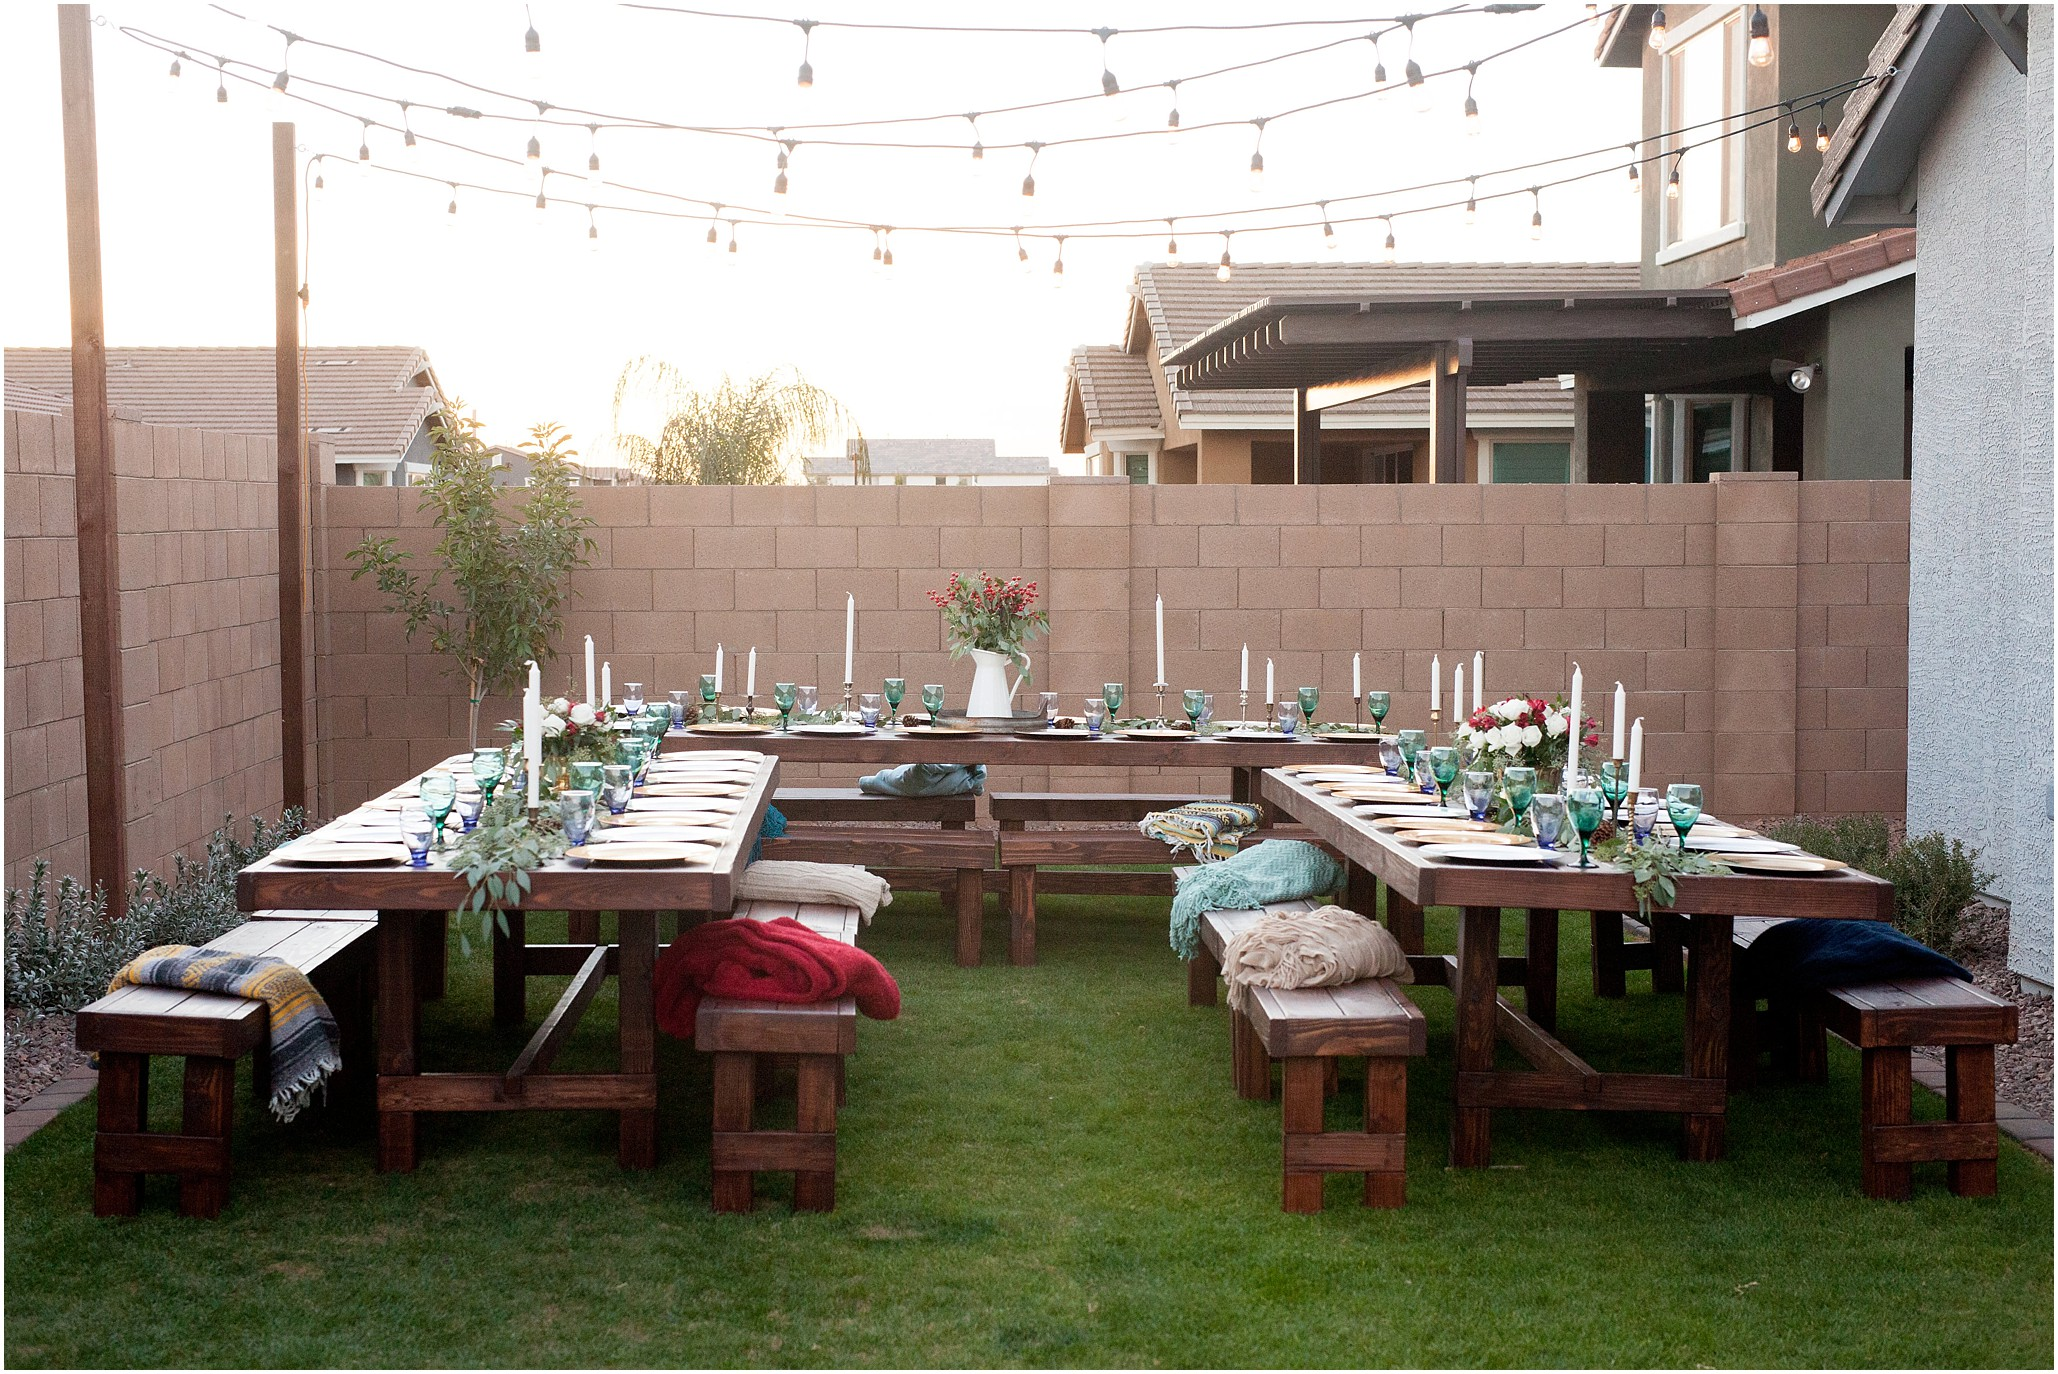 scottsdale farm table rentals phoenix_0002.jpg